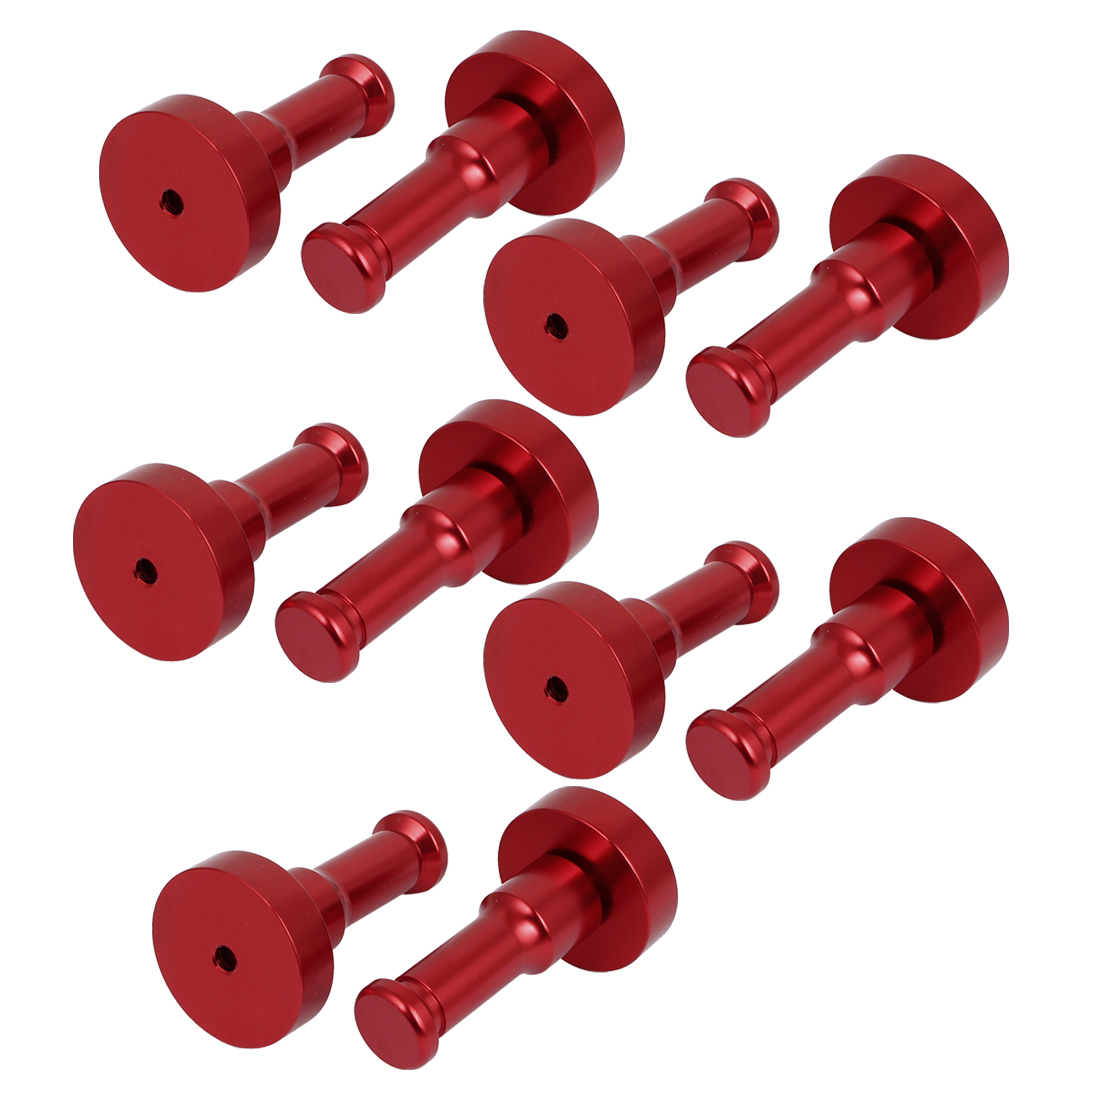 Aluminum DIY Clothes Hook Bedroom Coat Holder Decorative Wall Hanger Red 10pcs